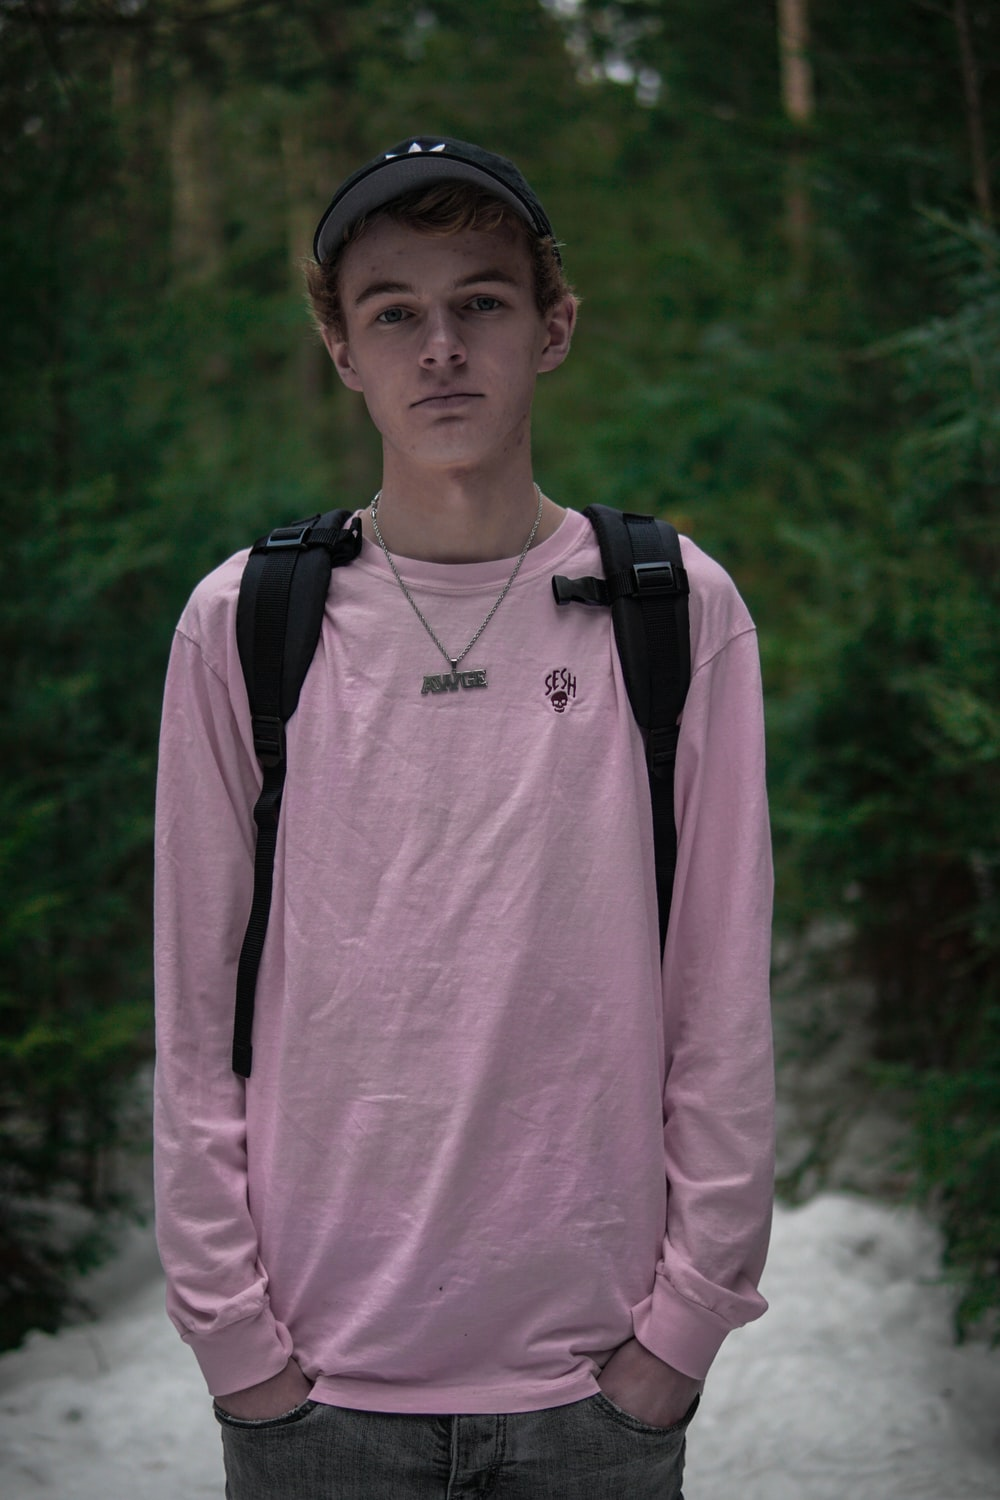 man wearing pink crew-neck shirt